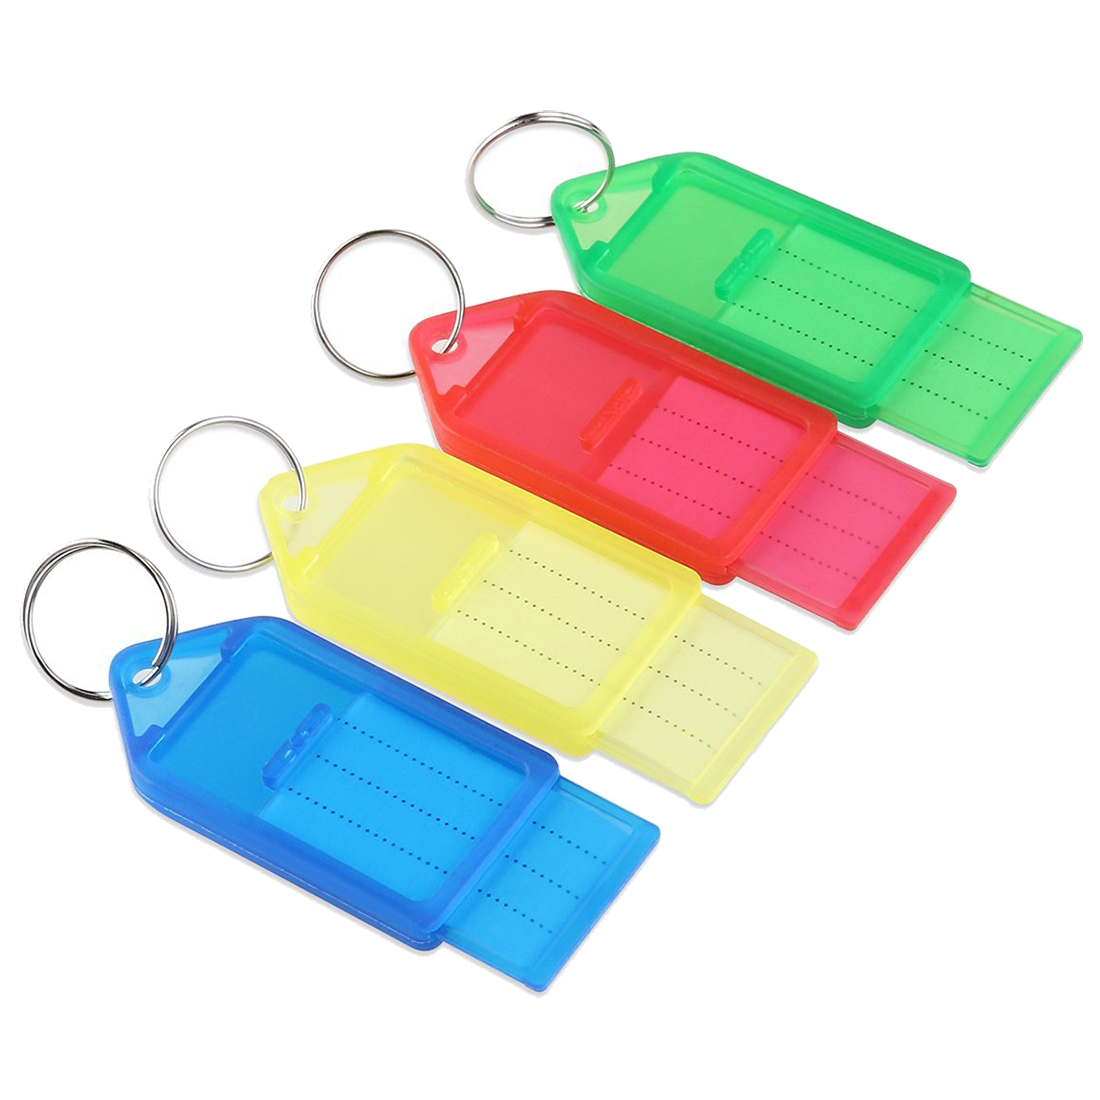 TFTP 60pcs plastic Slideable Key Fobs Luggage Tags with Key Rings Random Color